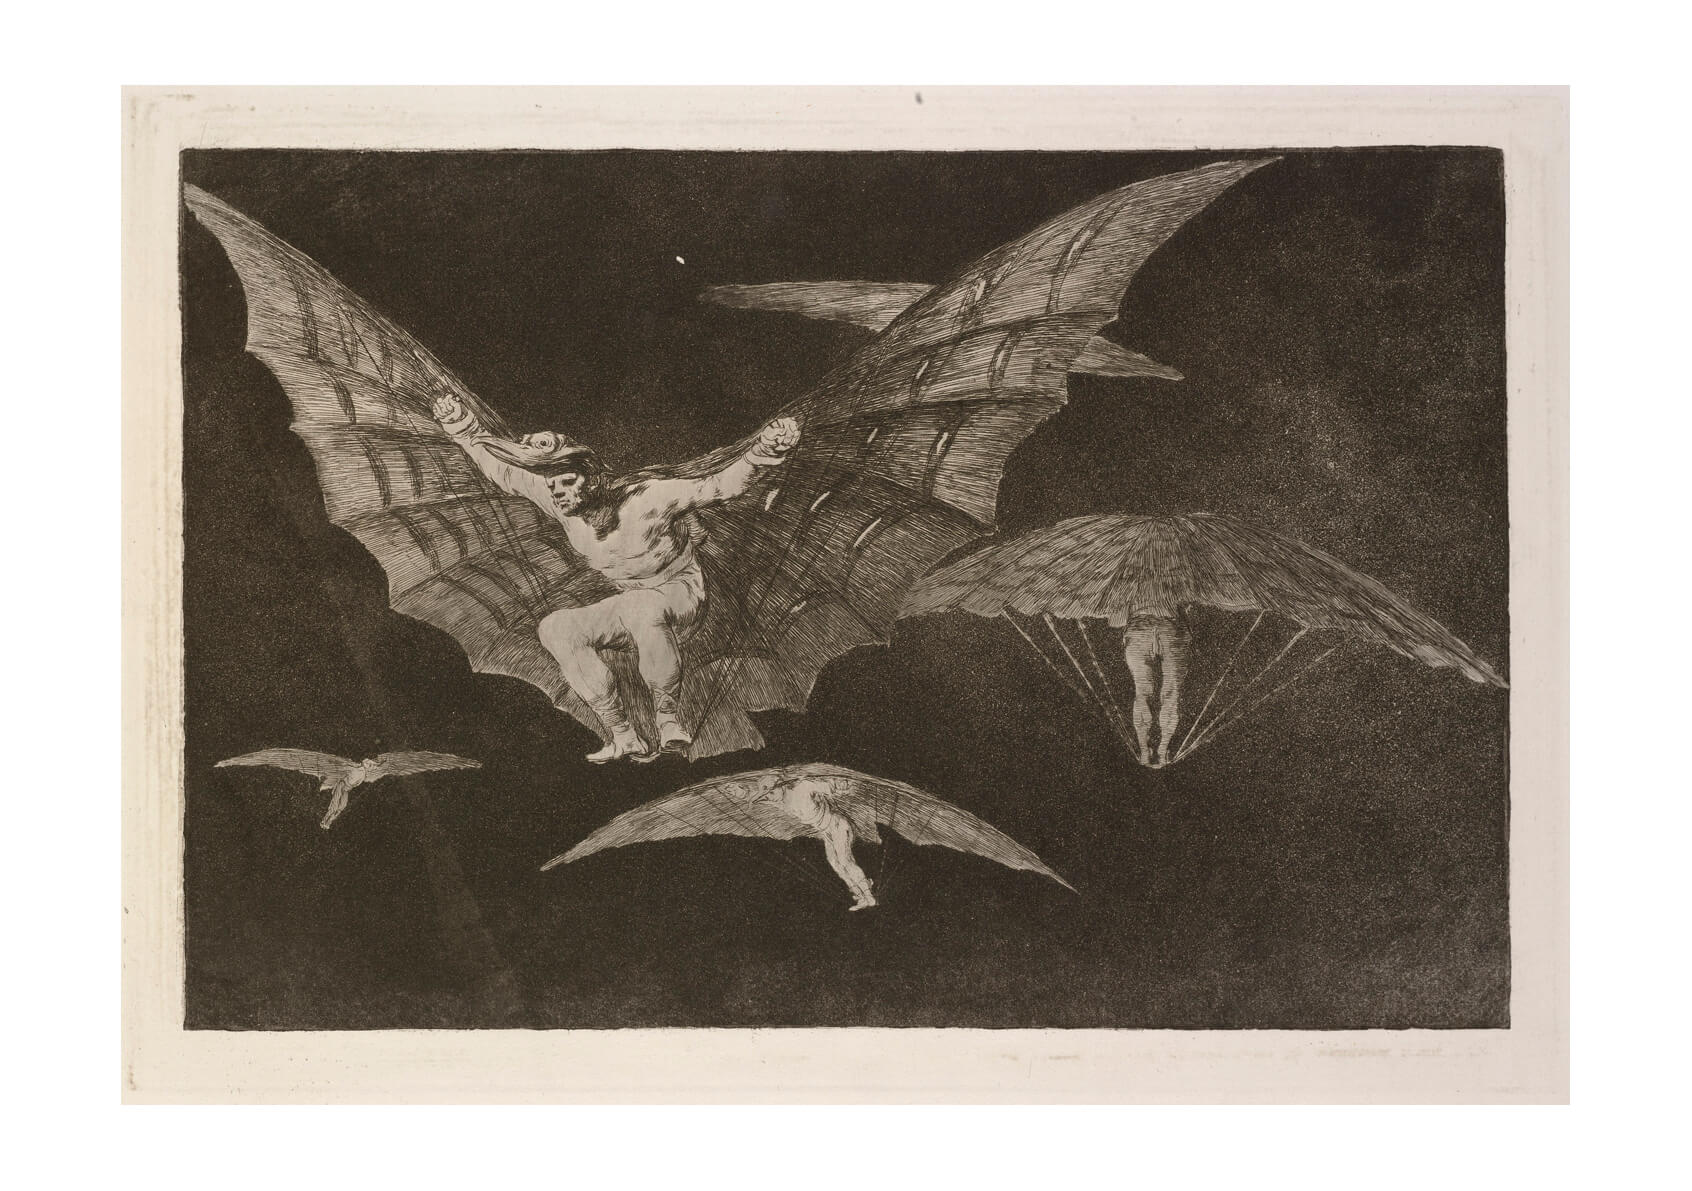 Francisco de Goya - A Way of Flying